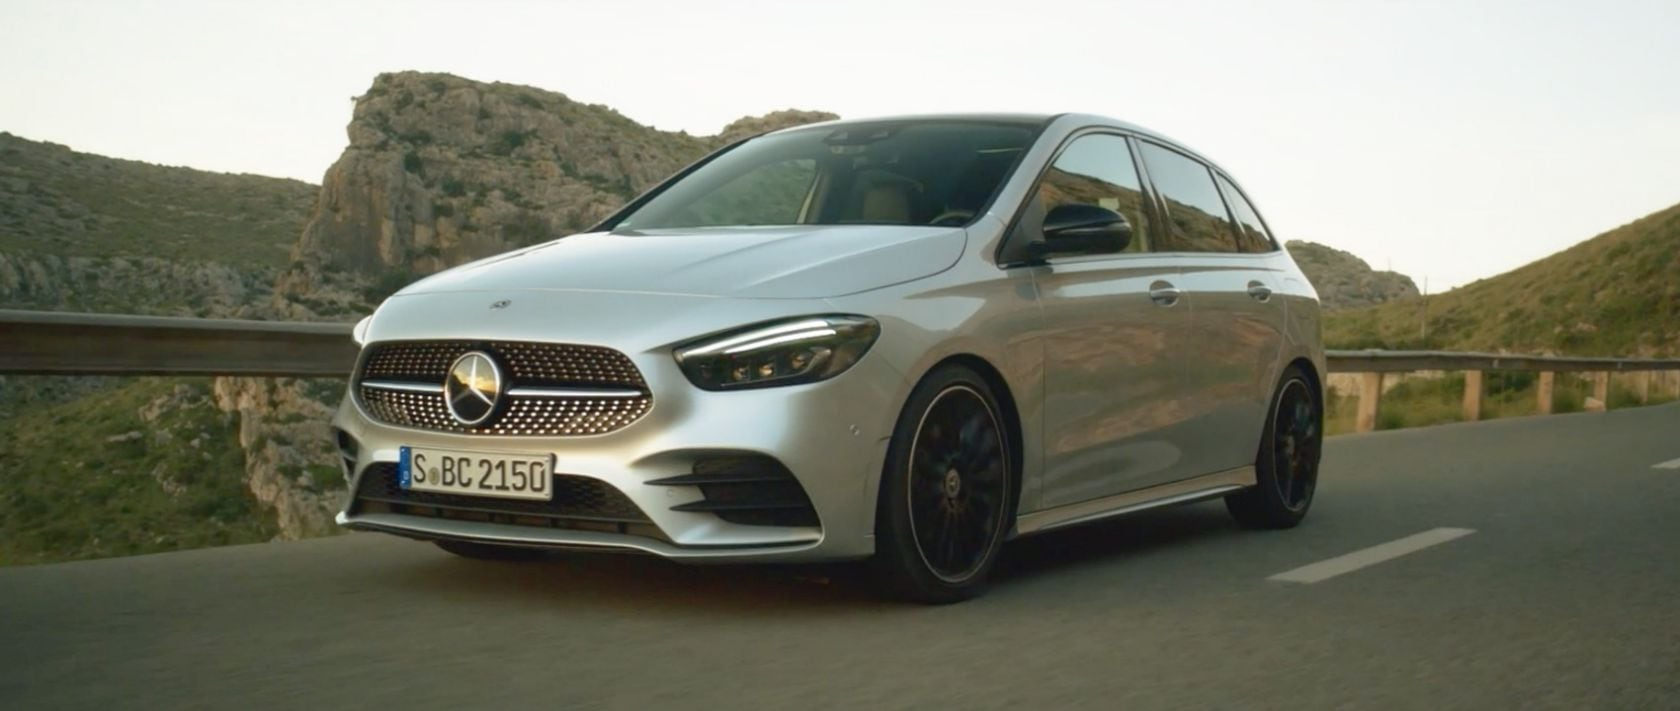 The Mercedes-Benz B-Class (W 247): Front view.